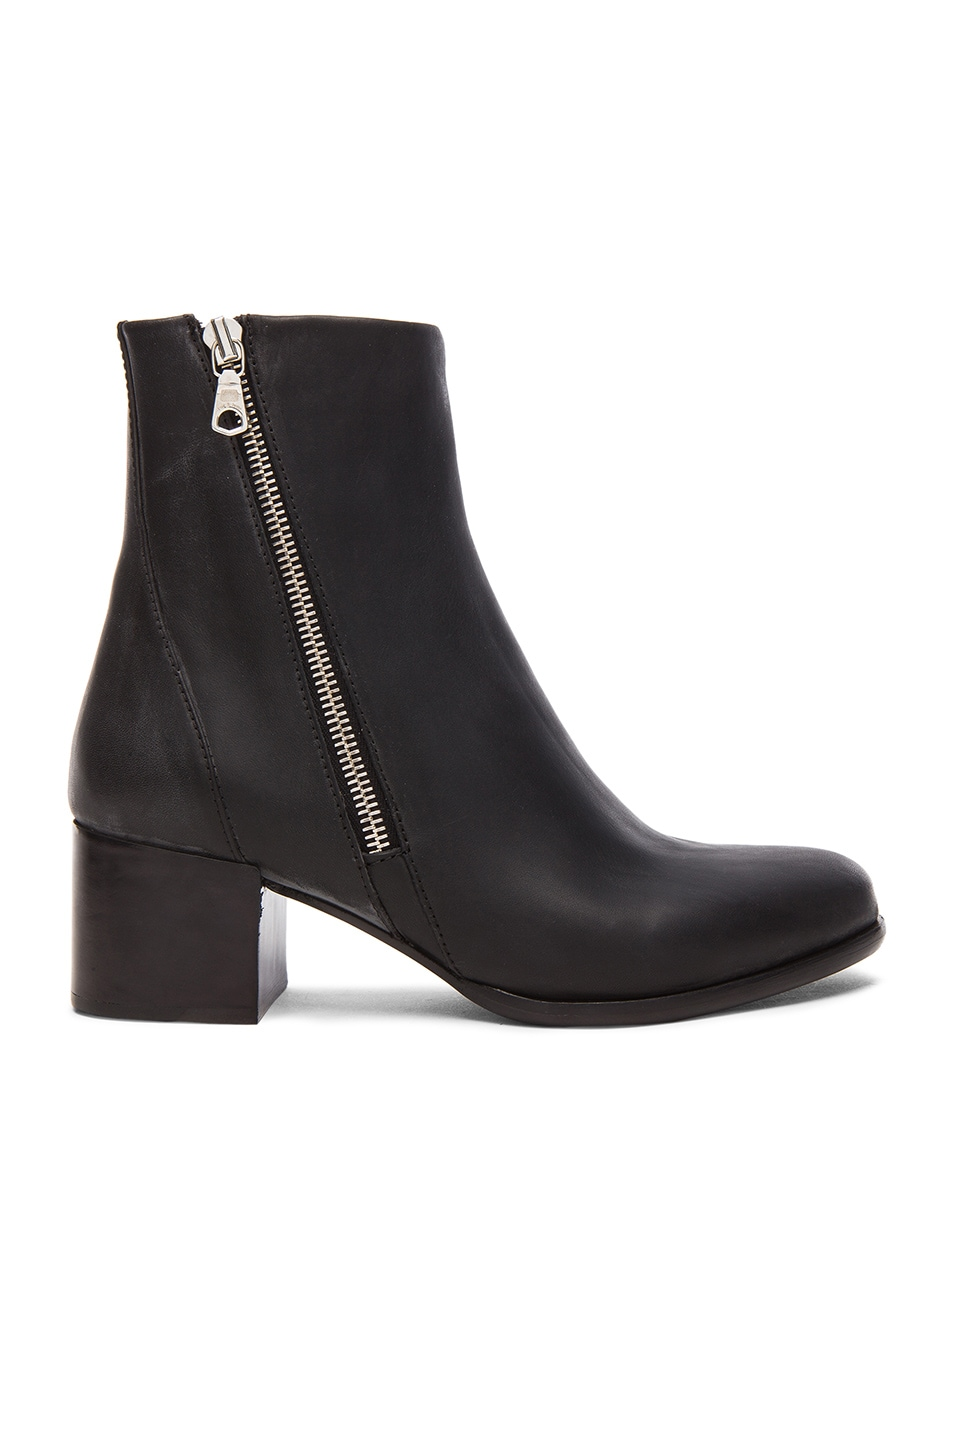 Image 1 of Rag & Bone Avery Leather Low Booties in Black